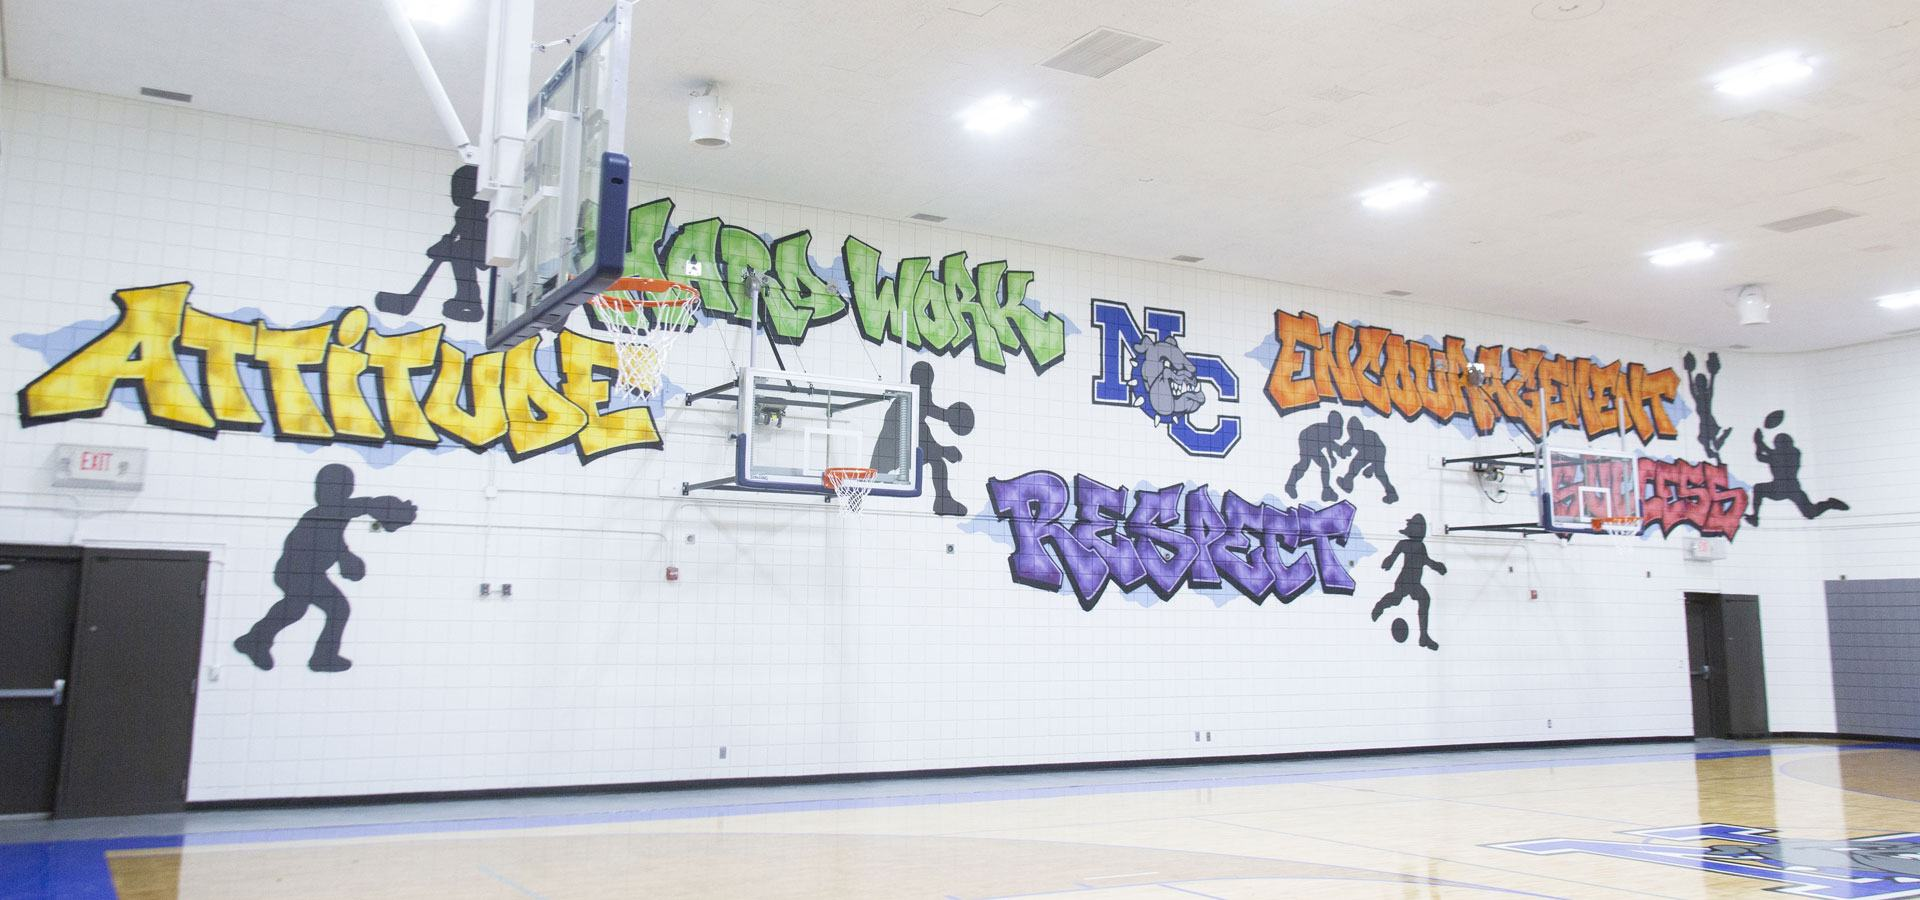 A decorative mural with young people playing sports and the words attitude, hard work, respect, encouragement, success decorating a rec center basketball court